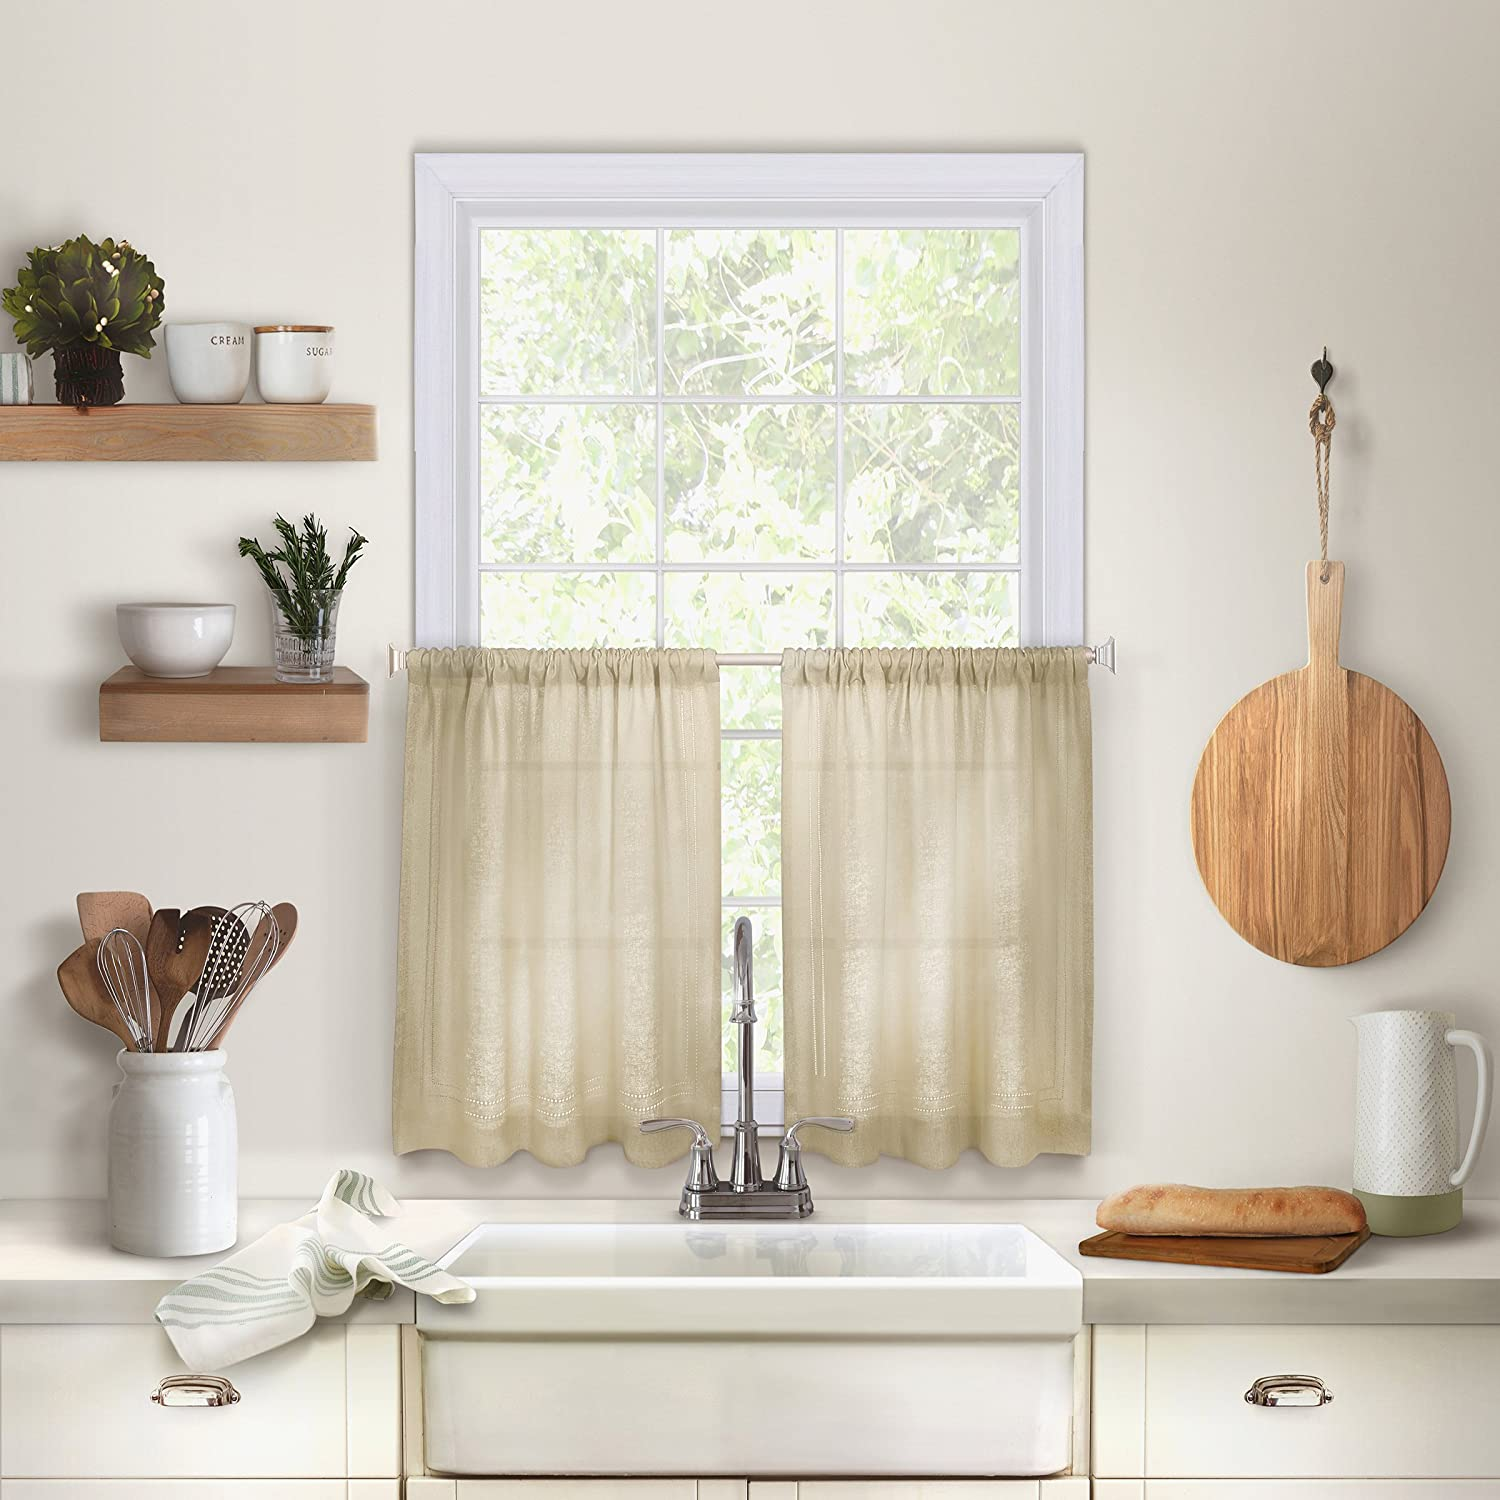 "Elrene Home Fashions 26865775389 Solid Hemstitched Rod Pocket Café/Kitchen Tier Window Curtain, Set of 2, 30"" x 36"", Linen, 30"" W x 36"" L"